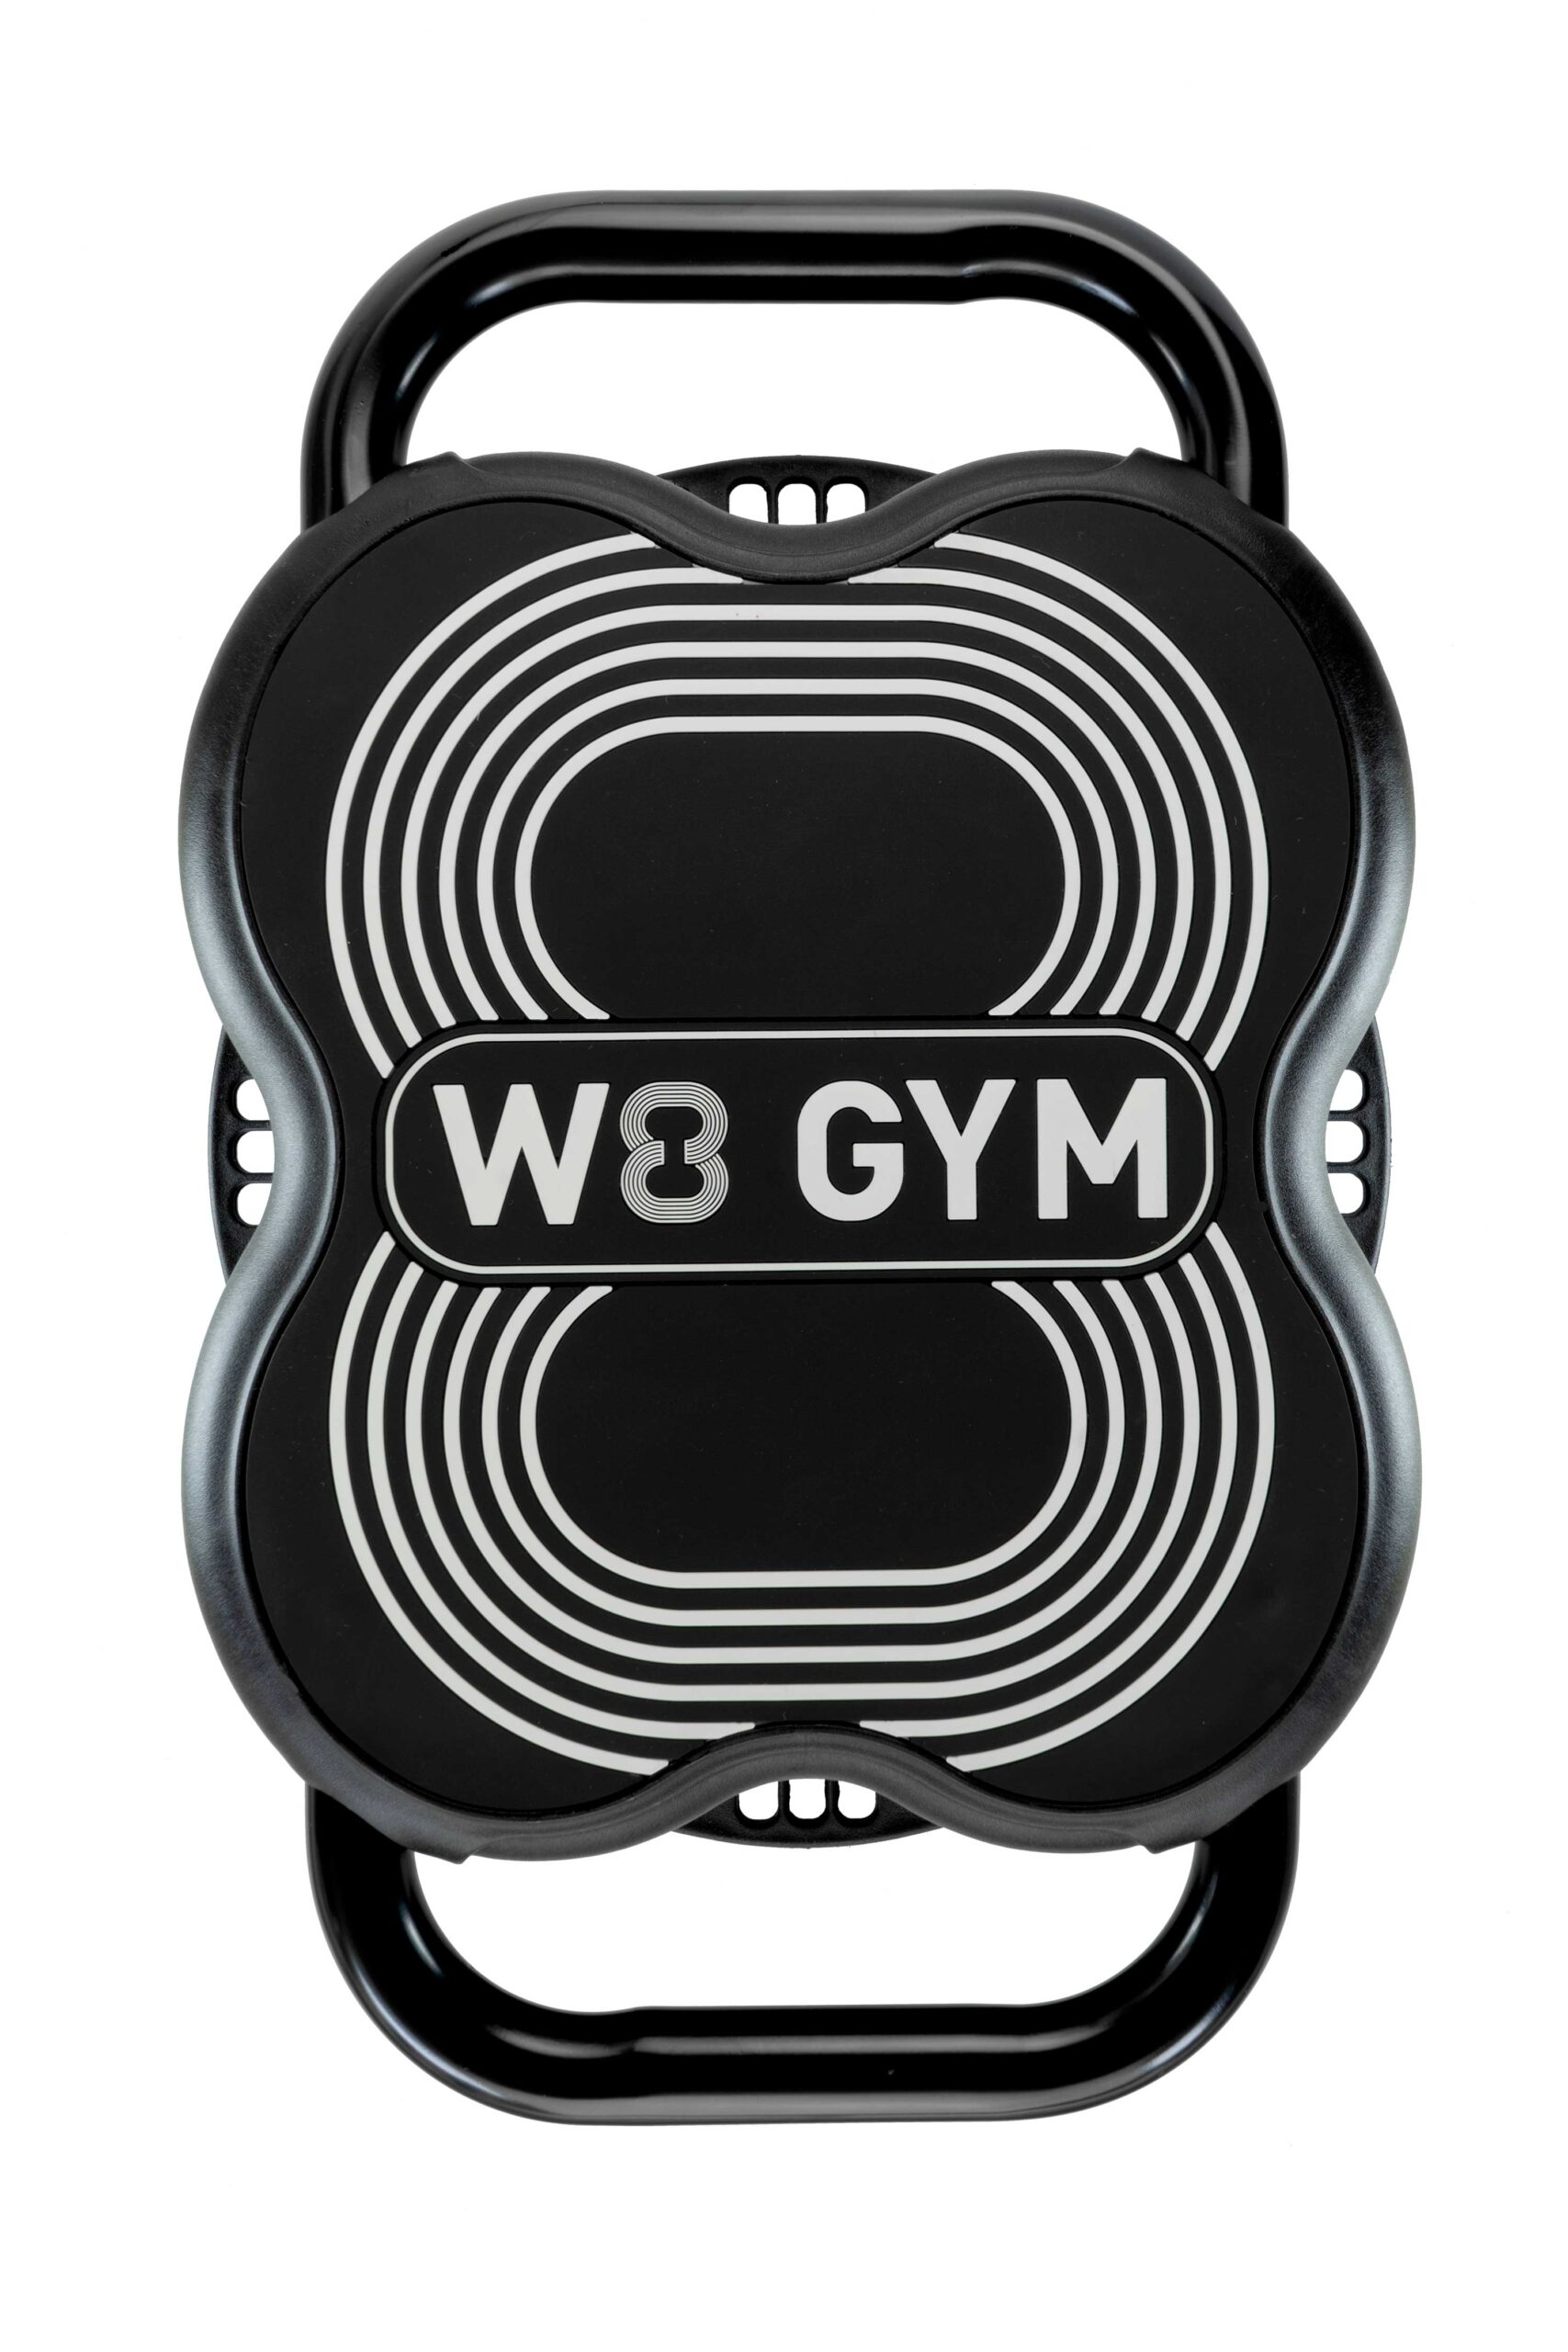 W8 GYM Cool White